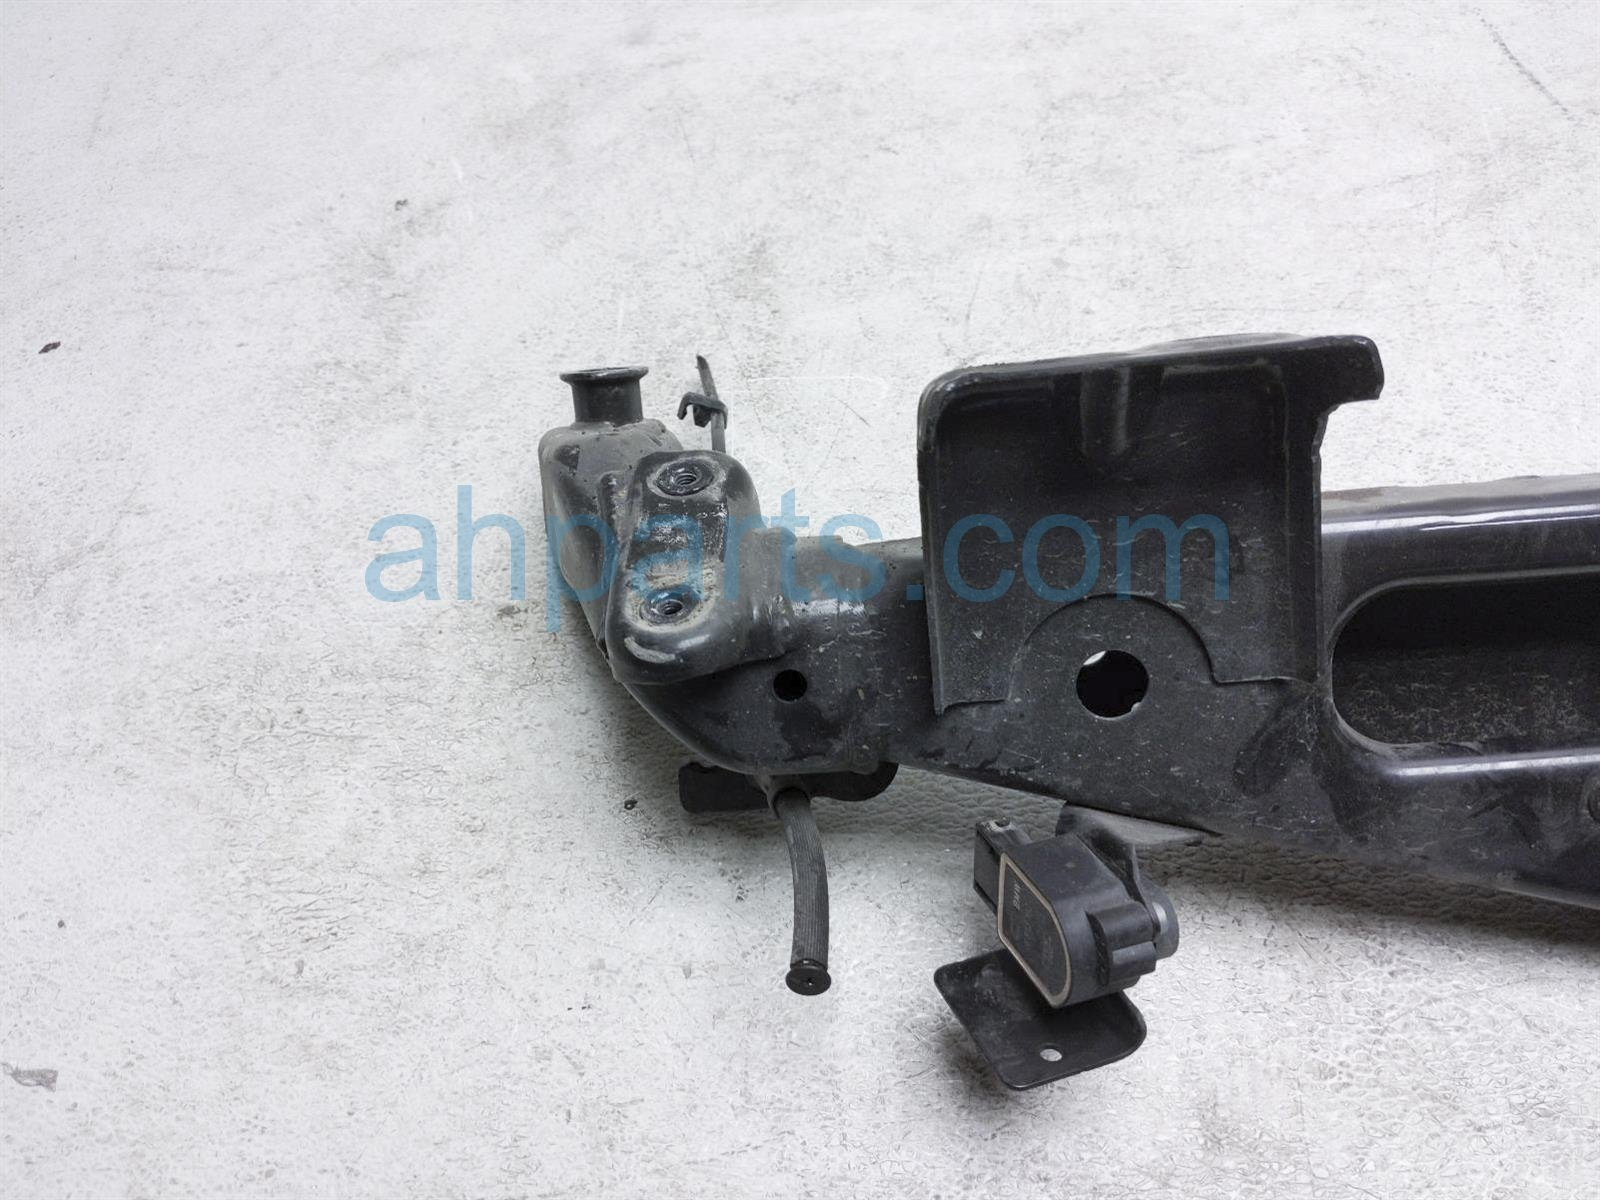 2014 BMW Clubman Minicooper Crossmember Rear Sub Frame / Cradle 33 31 6 772 667 Replacement